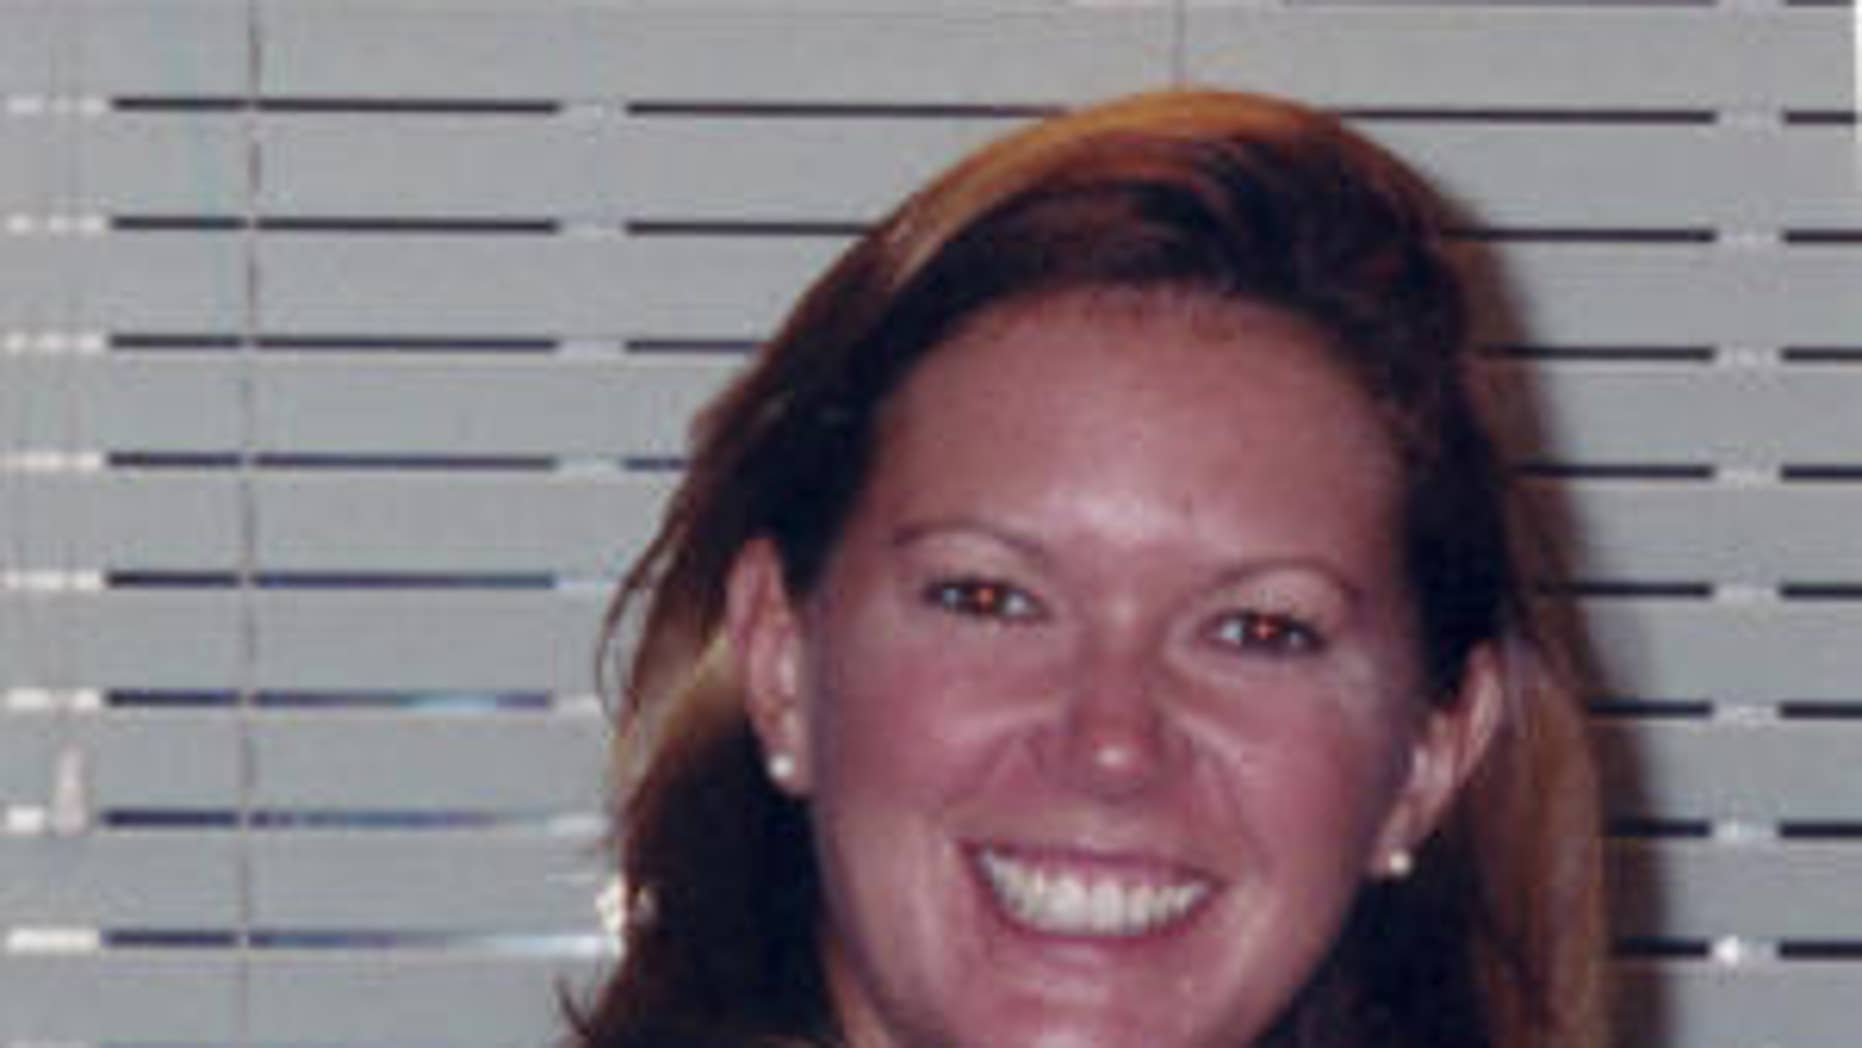 Dawn Viens has been missing since October 2009.